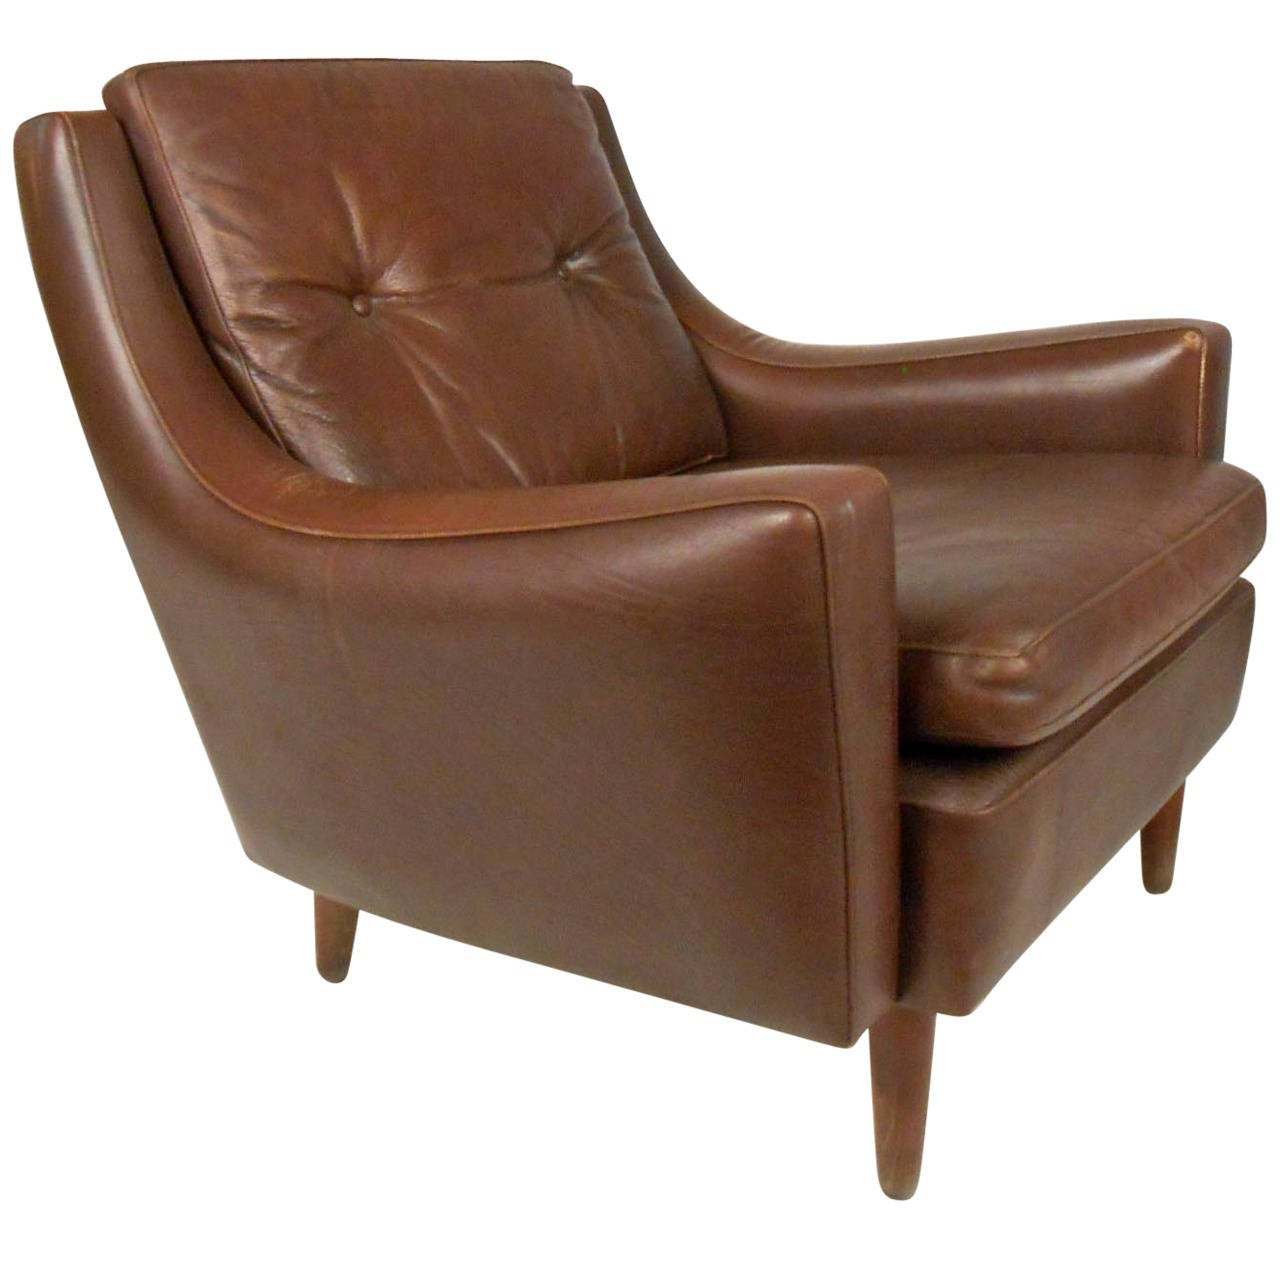 Mid century modern tufted brown leather club chair at 1stdibs for Modern leather chair